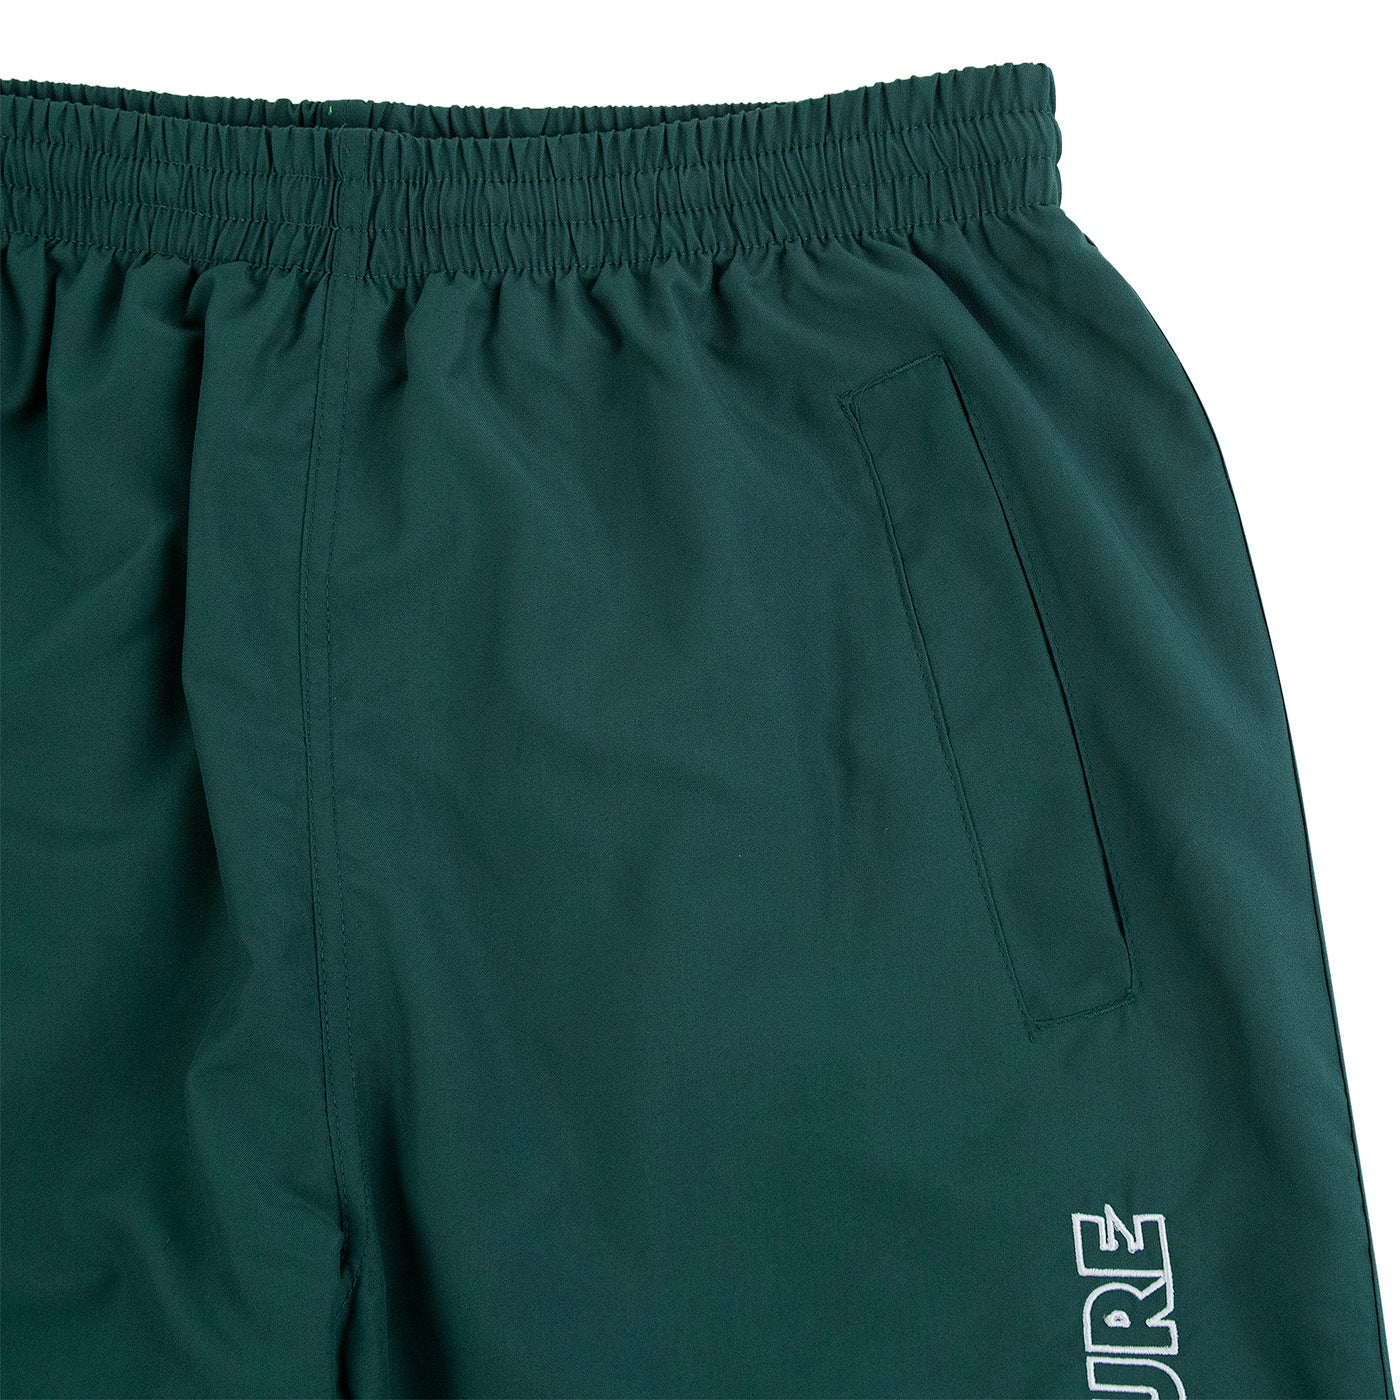 Image of OUTLINE LOGO EMBROIDERED TRACKSUIT PANTS - DARK GREEN / WHITE